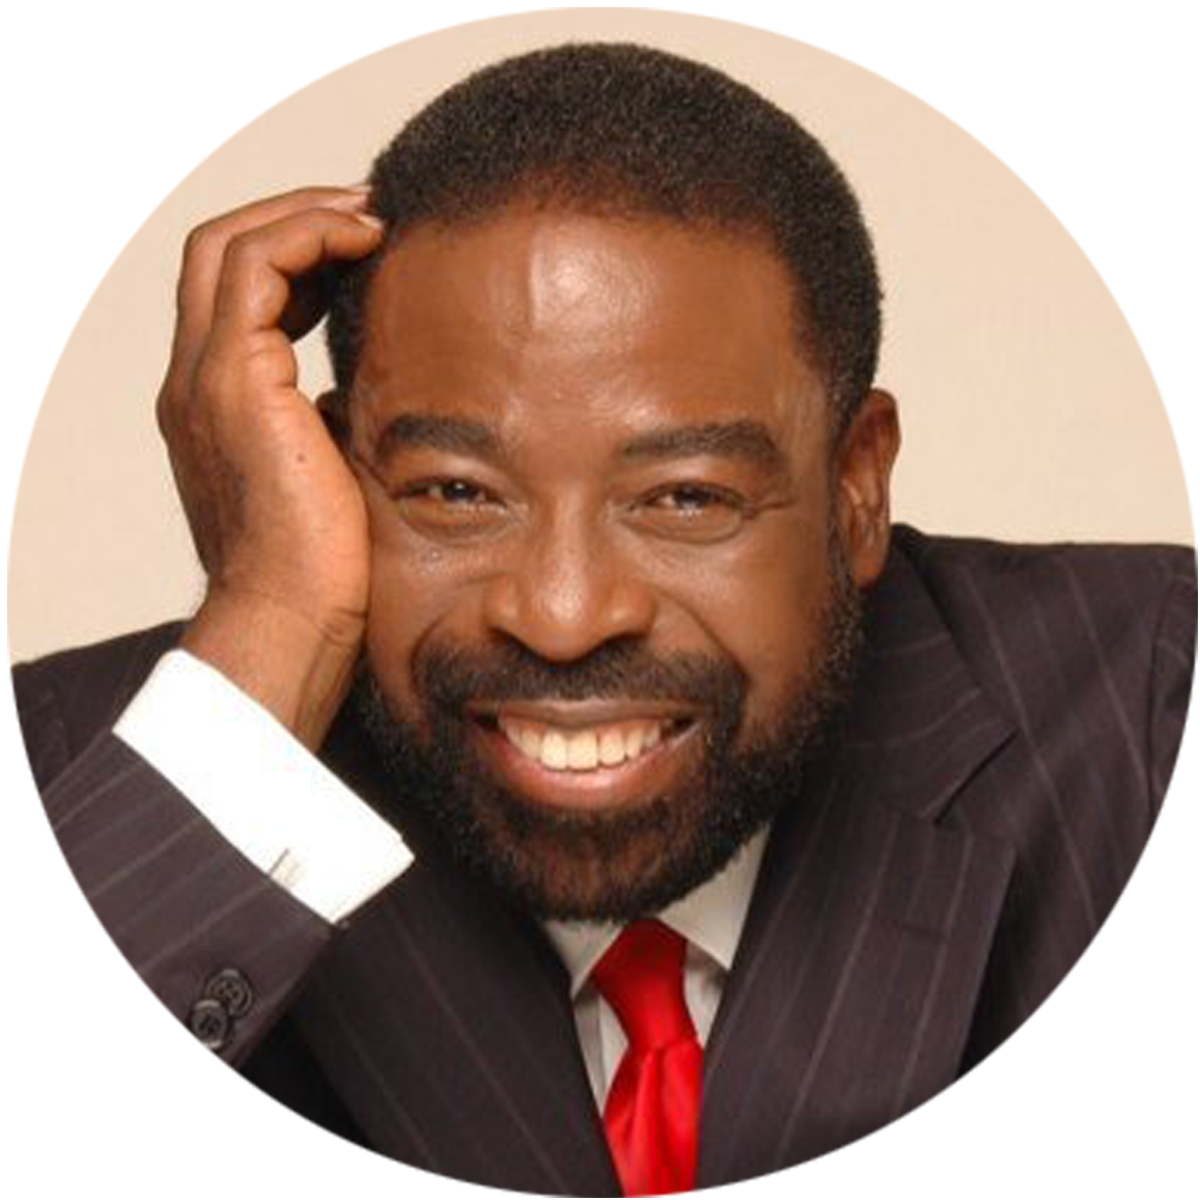 Les Brown - World Renowned Motivational Speaker